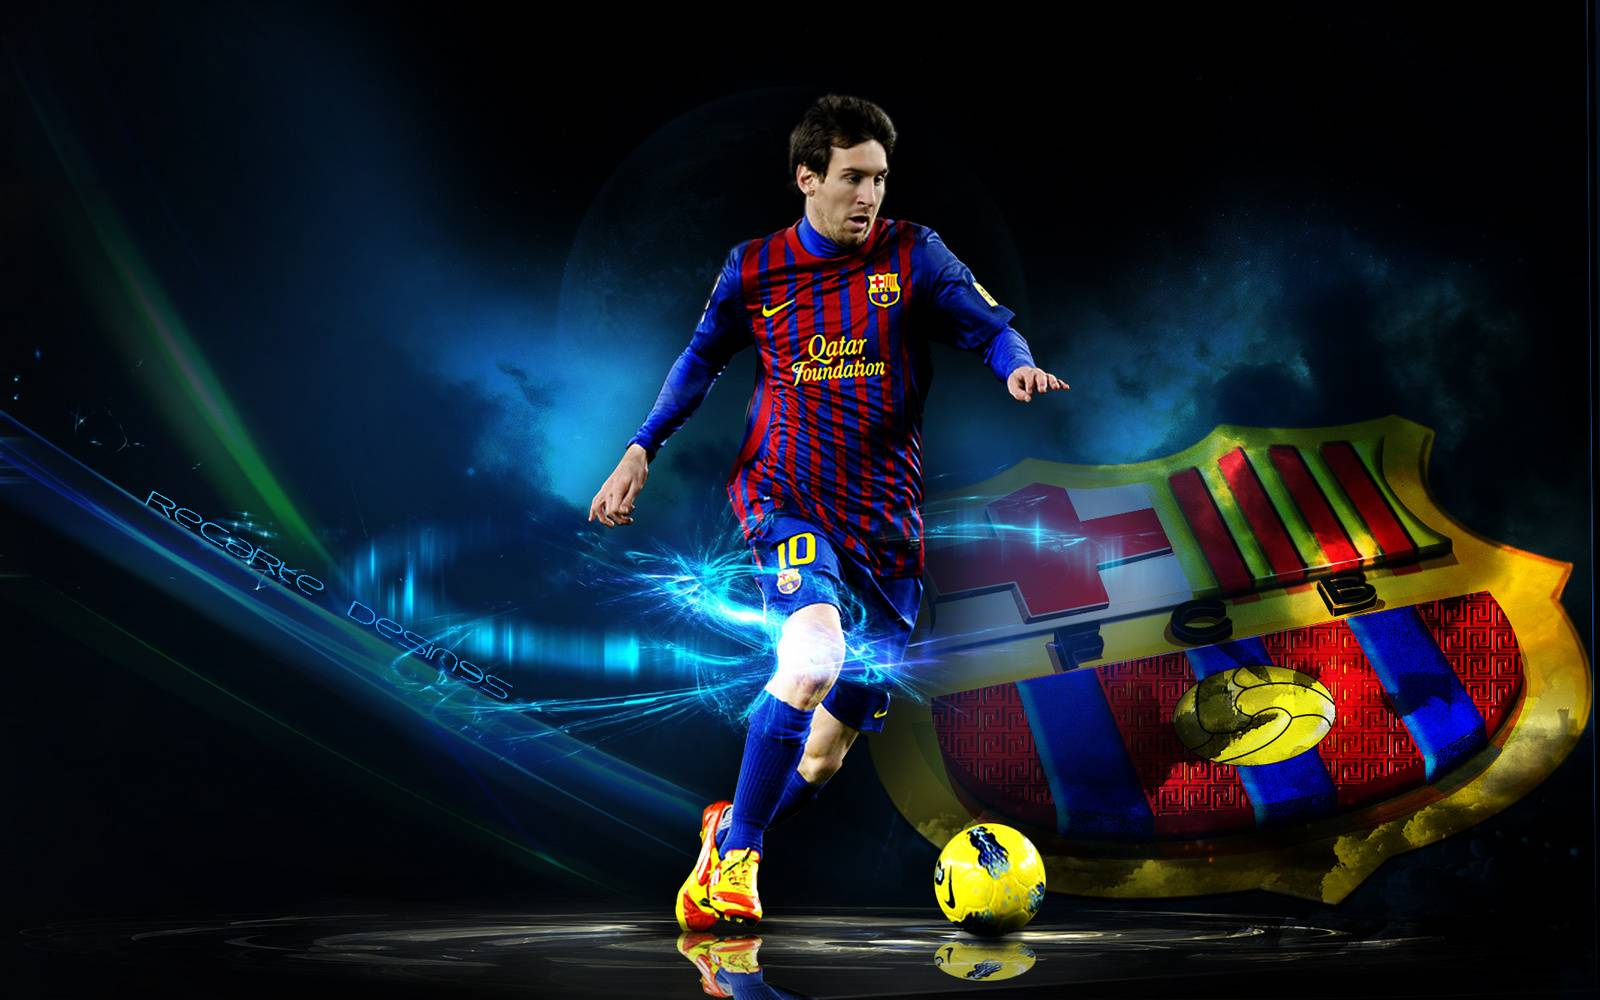 Lionel Messi Cool Wallpapers lionel messi cool wallpapers 182 1600x1000